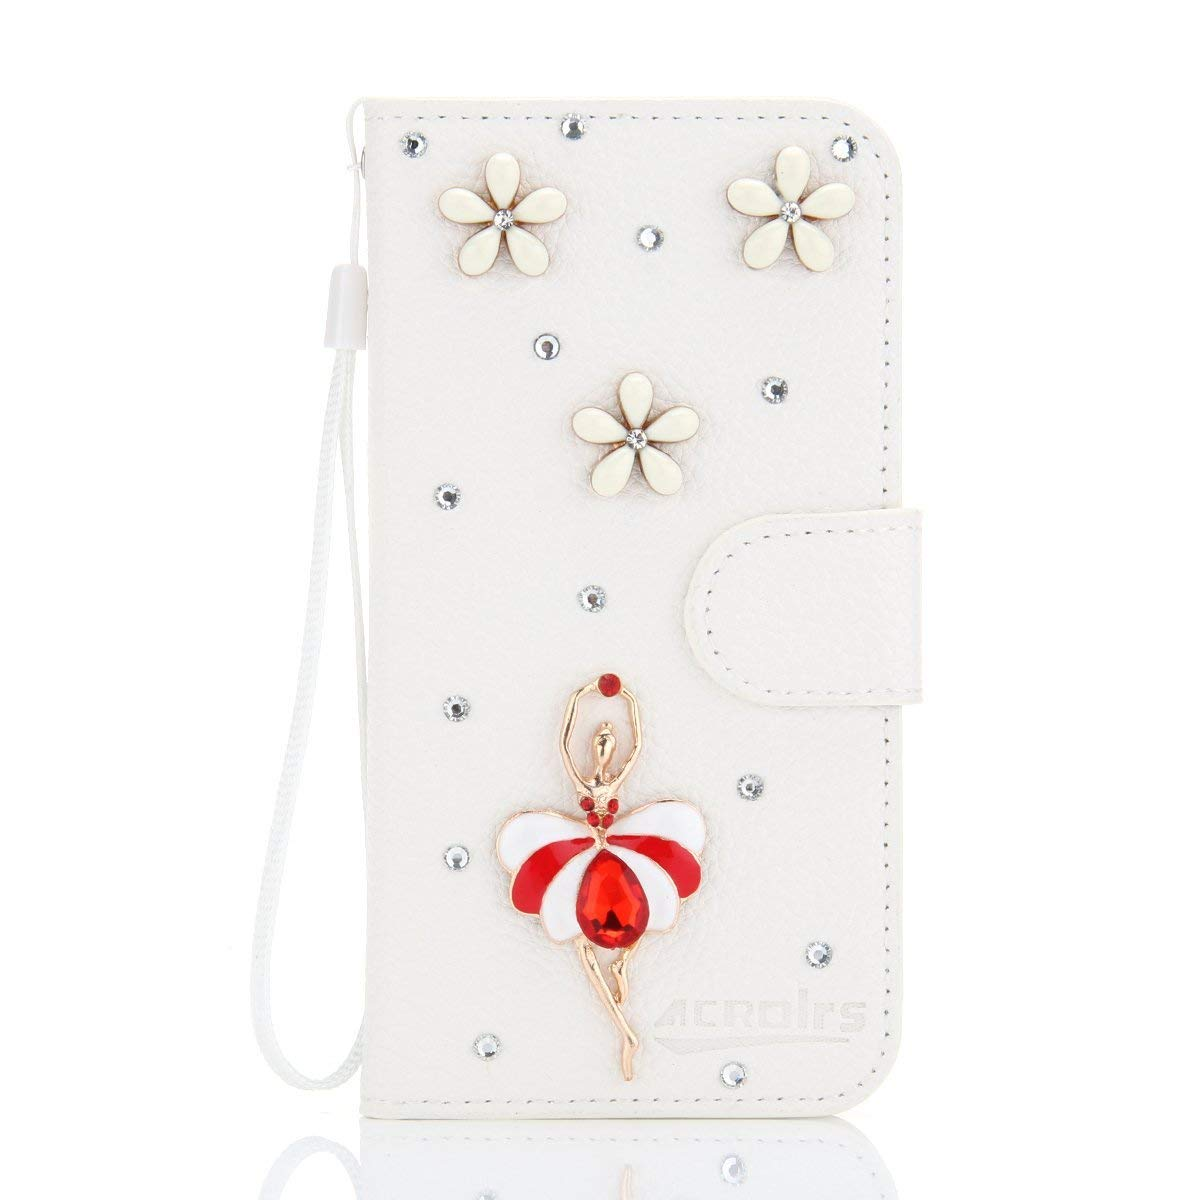 AICEDA ZTE Blade L3 Wallet Case, Stylish Slim PU Leather Accessories Stand and Card Holders Wallet Phone Cover Skin Protective Case for ZTE Blade L3 -Ballet Dancer